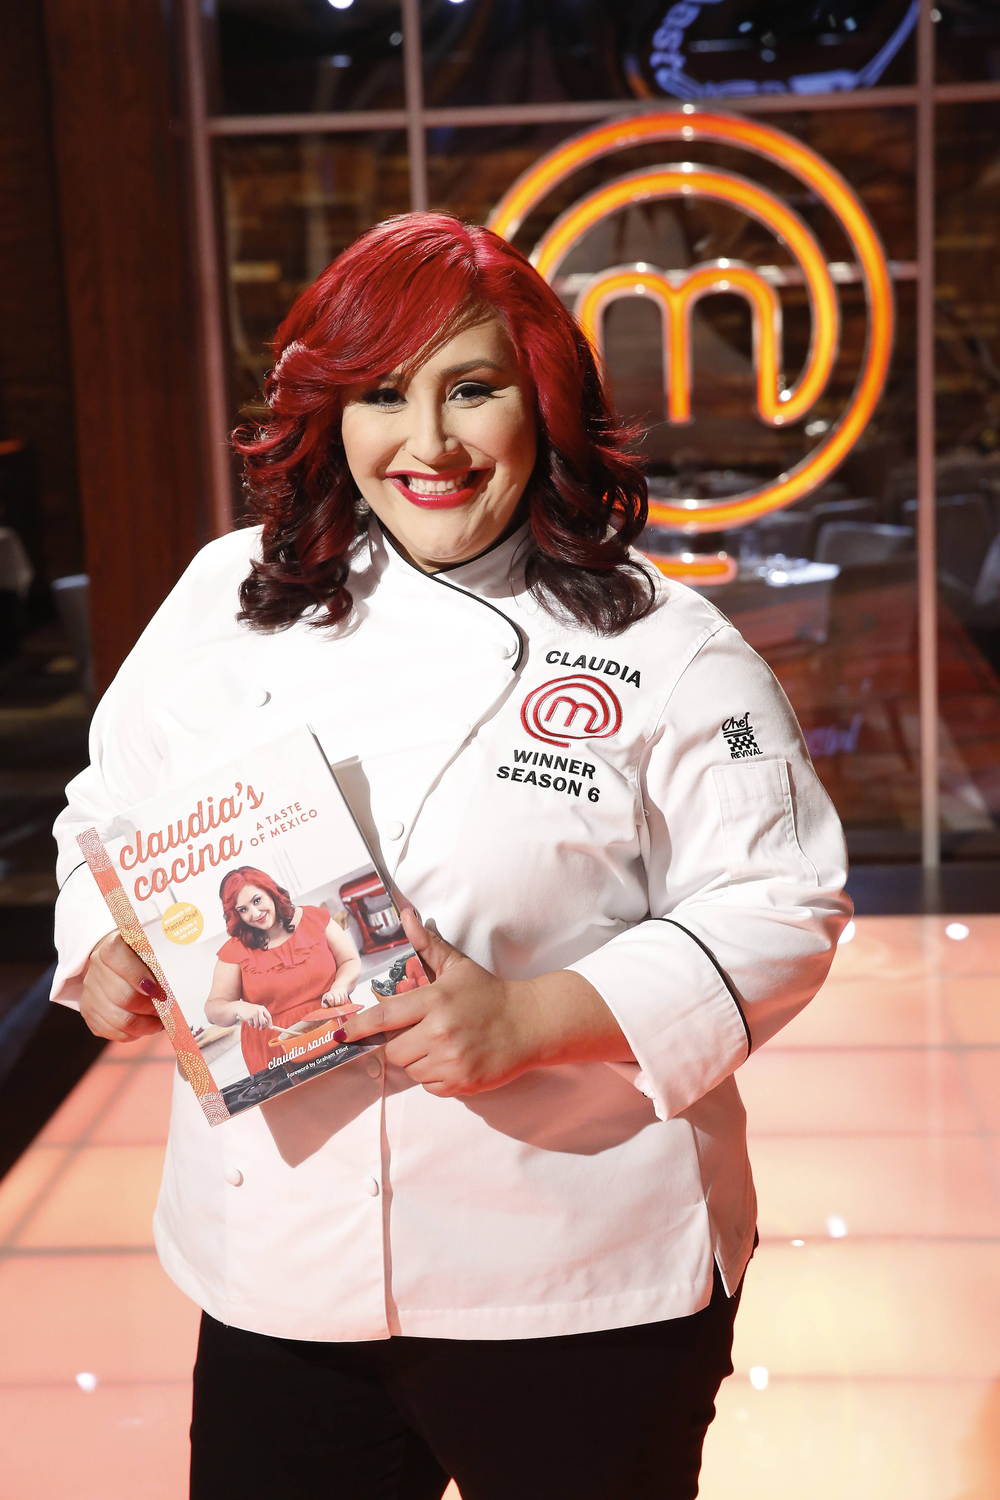 """MASTECHEF: Season 6 winner Claudia Sandoval in the all-new """"Top 17 Compete"""" episode of MASTERCHEF airing Wednesday, June 29 (8:00-9:00 PM ET/PT) on FOX. Cr: Greg Gayne / FOX. © 2016 FOX Broadcasting Co."""